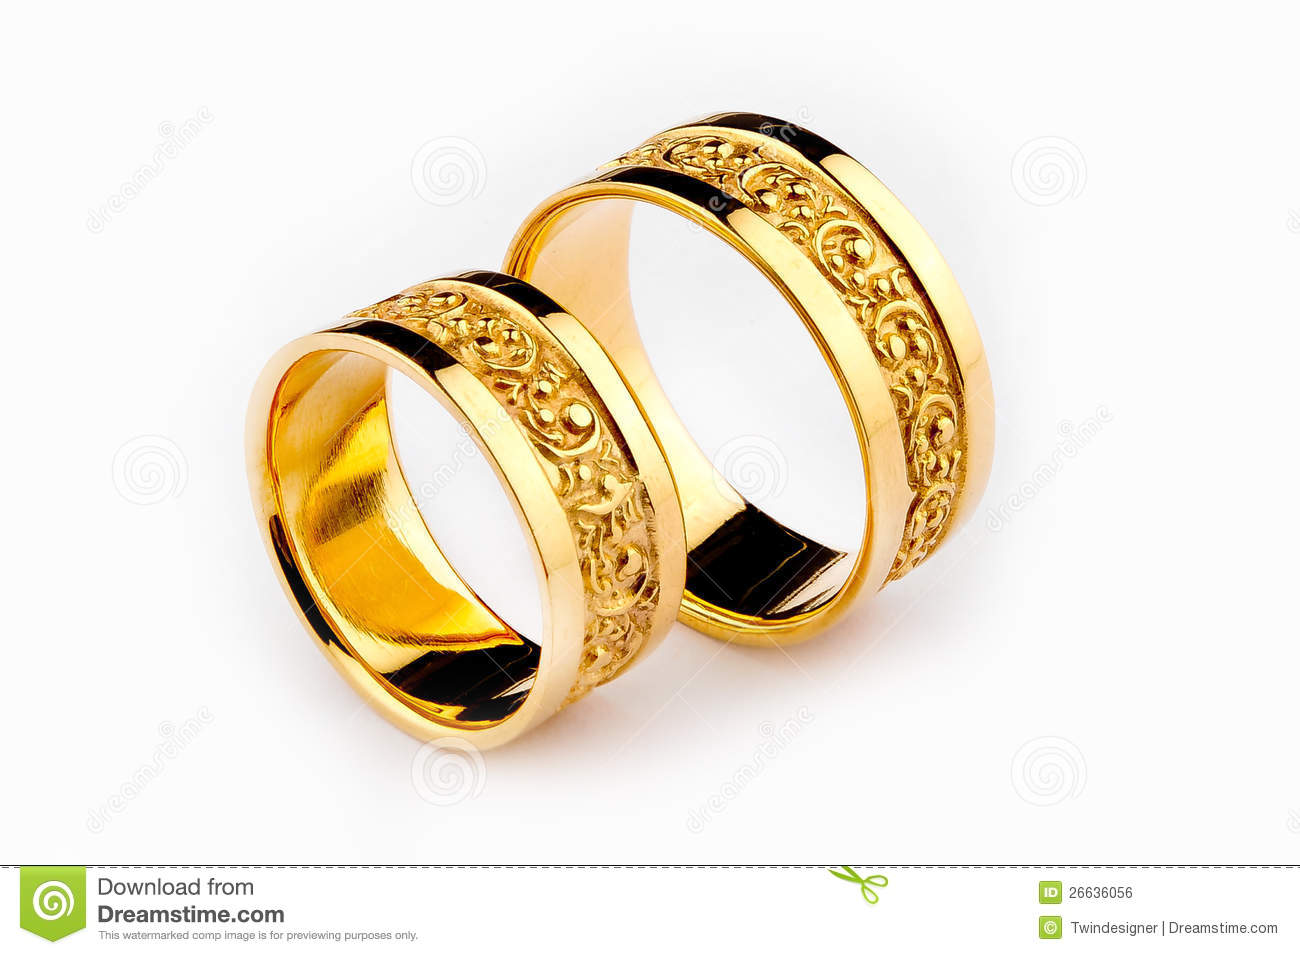 gold wedding rings royalty free stock image - Wedding Rings Pictures